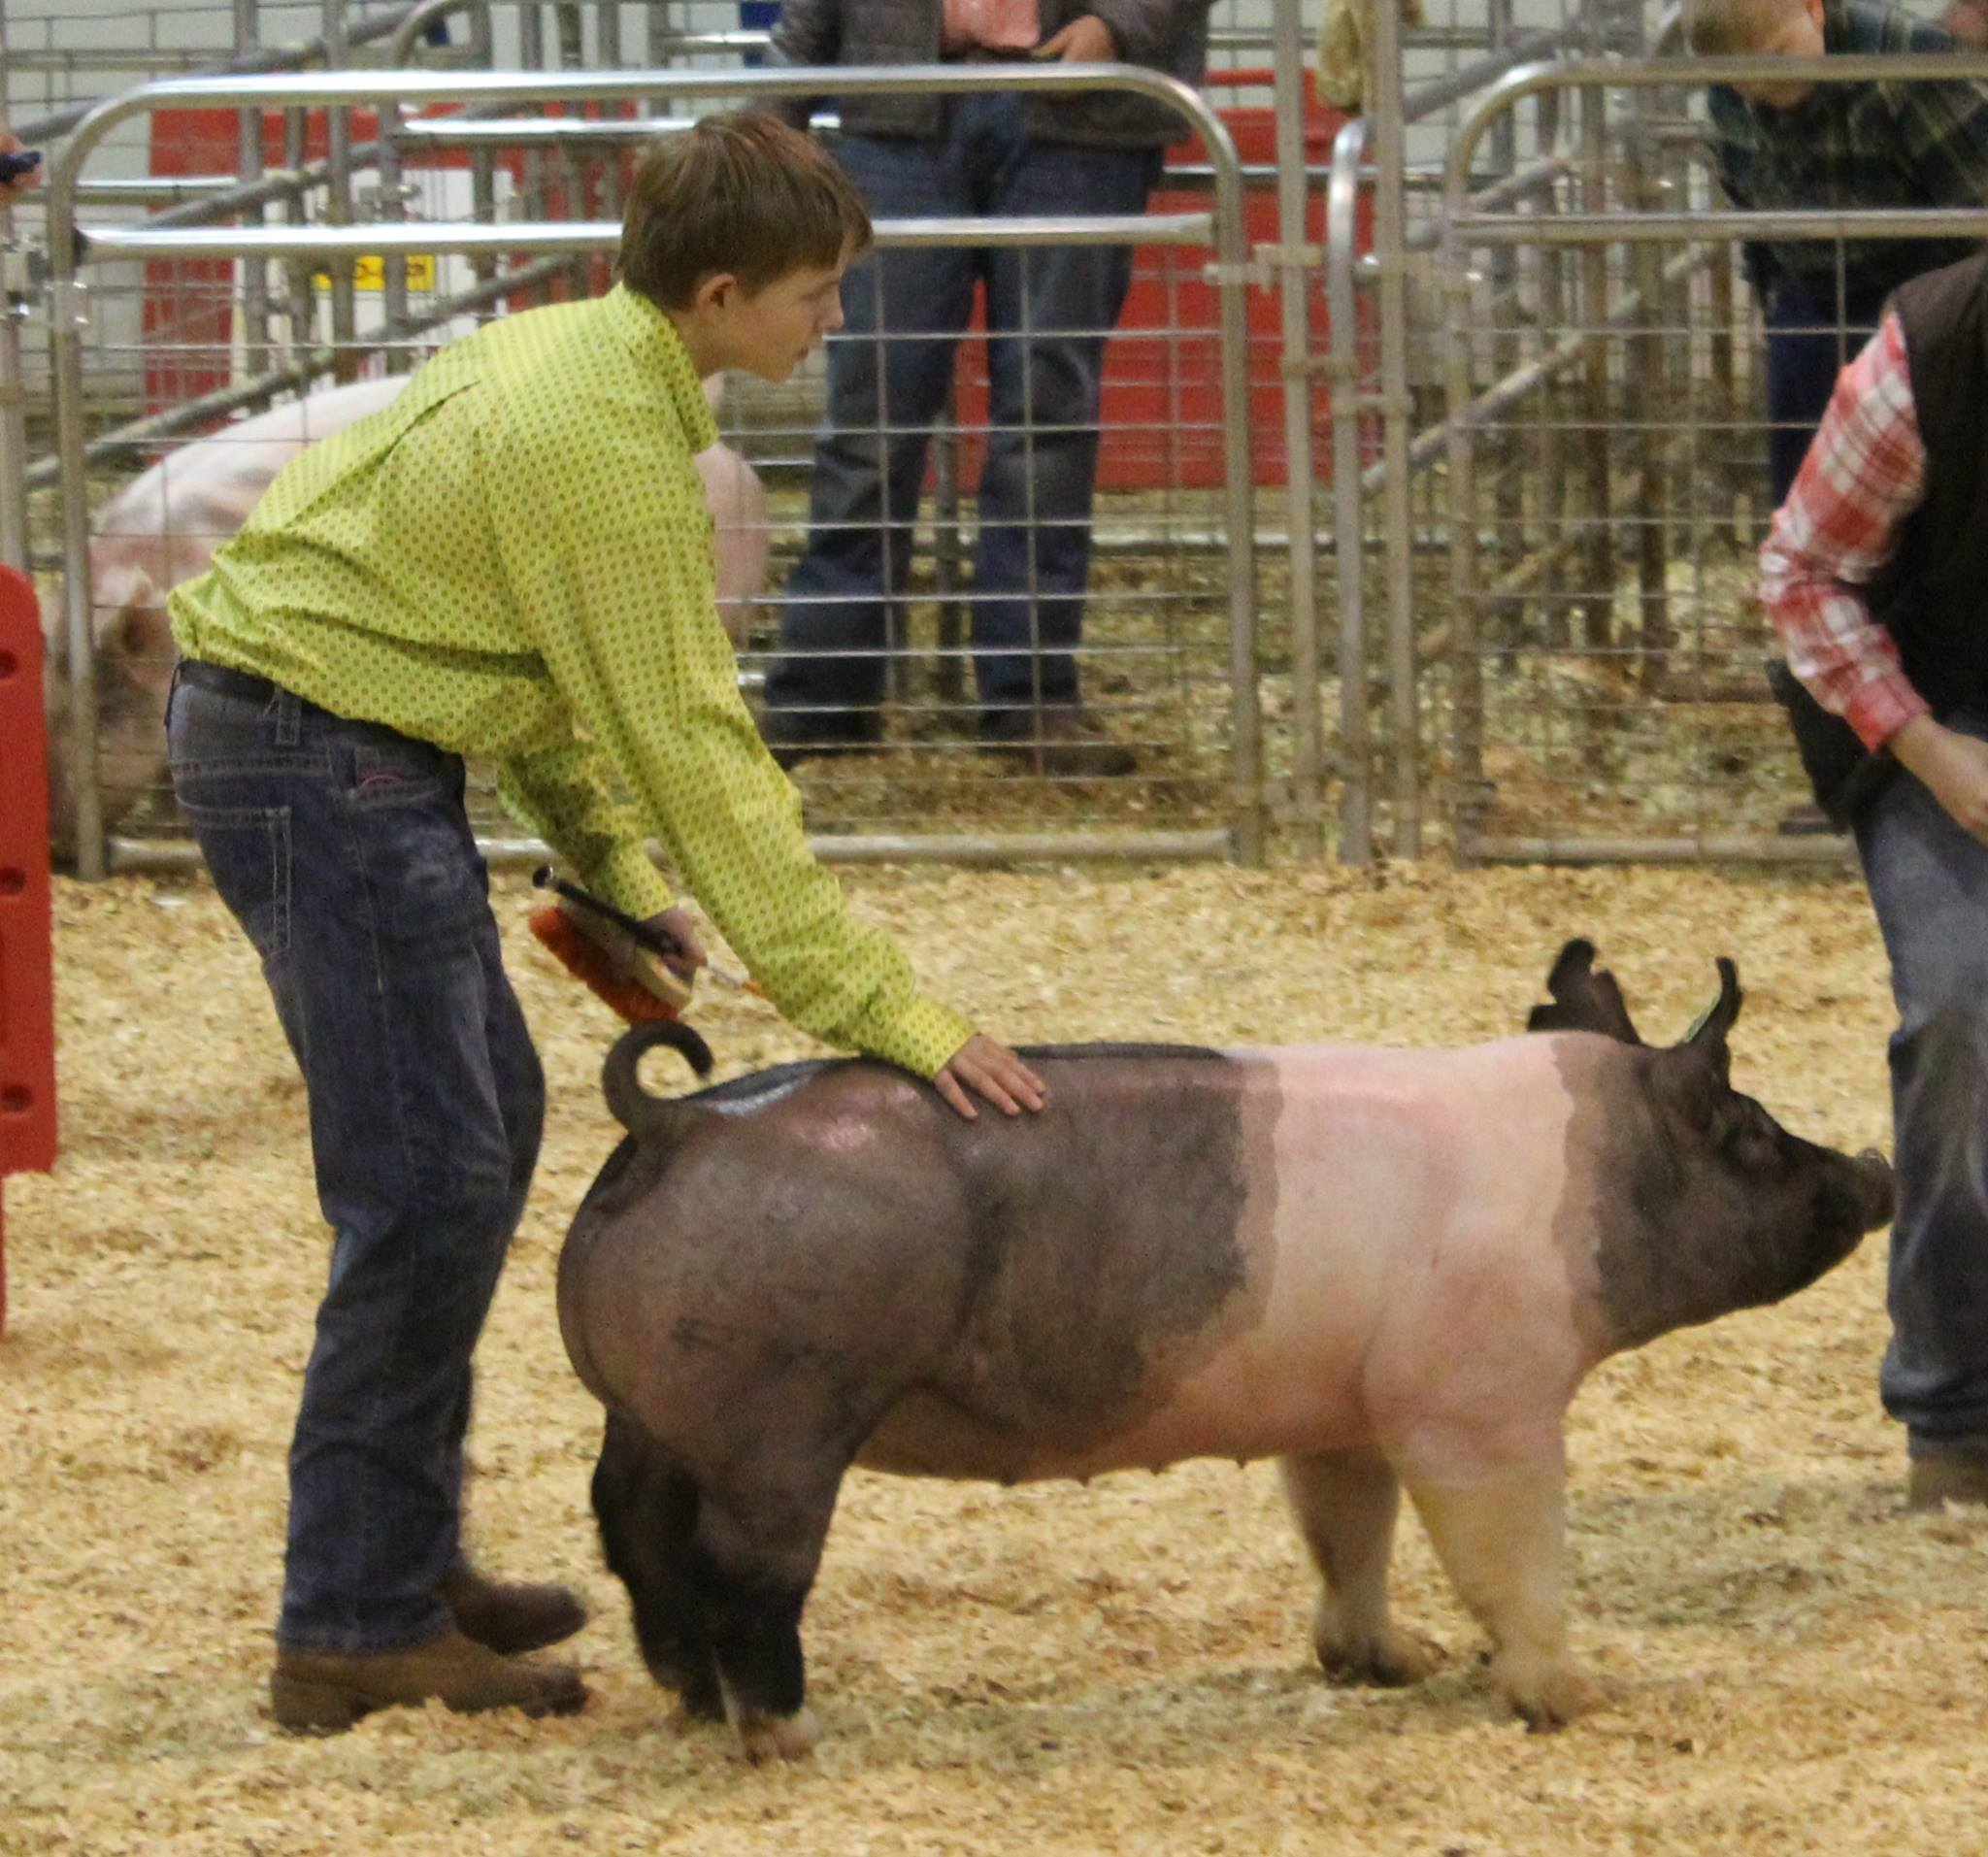 Will Derryberry:  3rd in Class 2016 TN State Market Hog Show